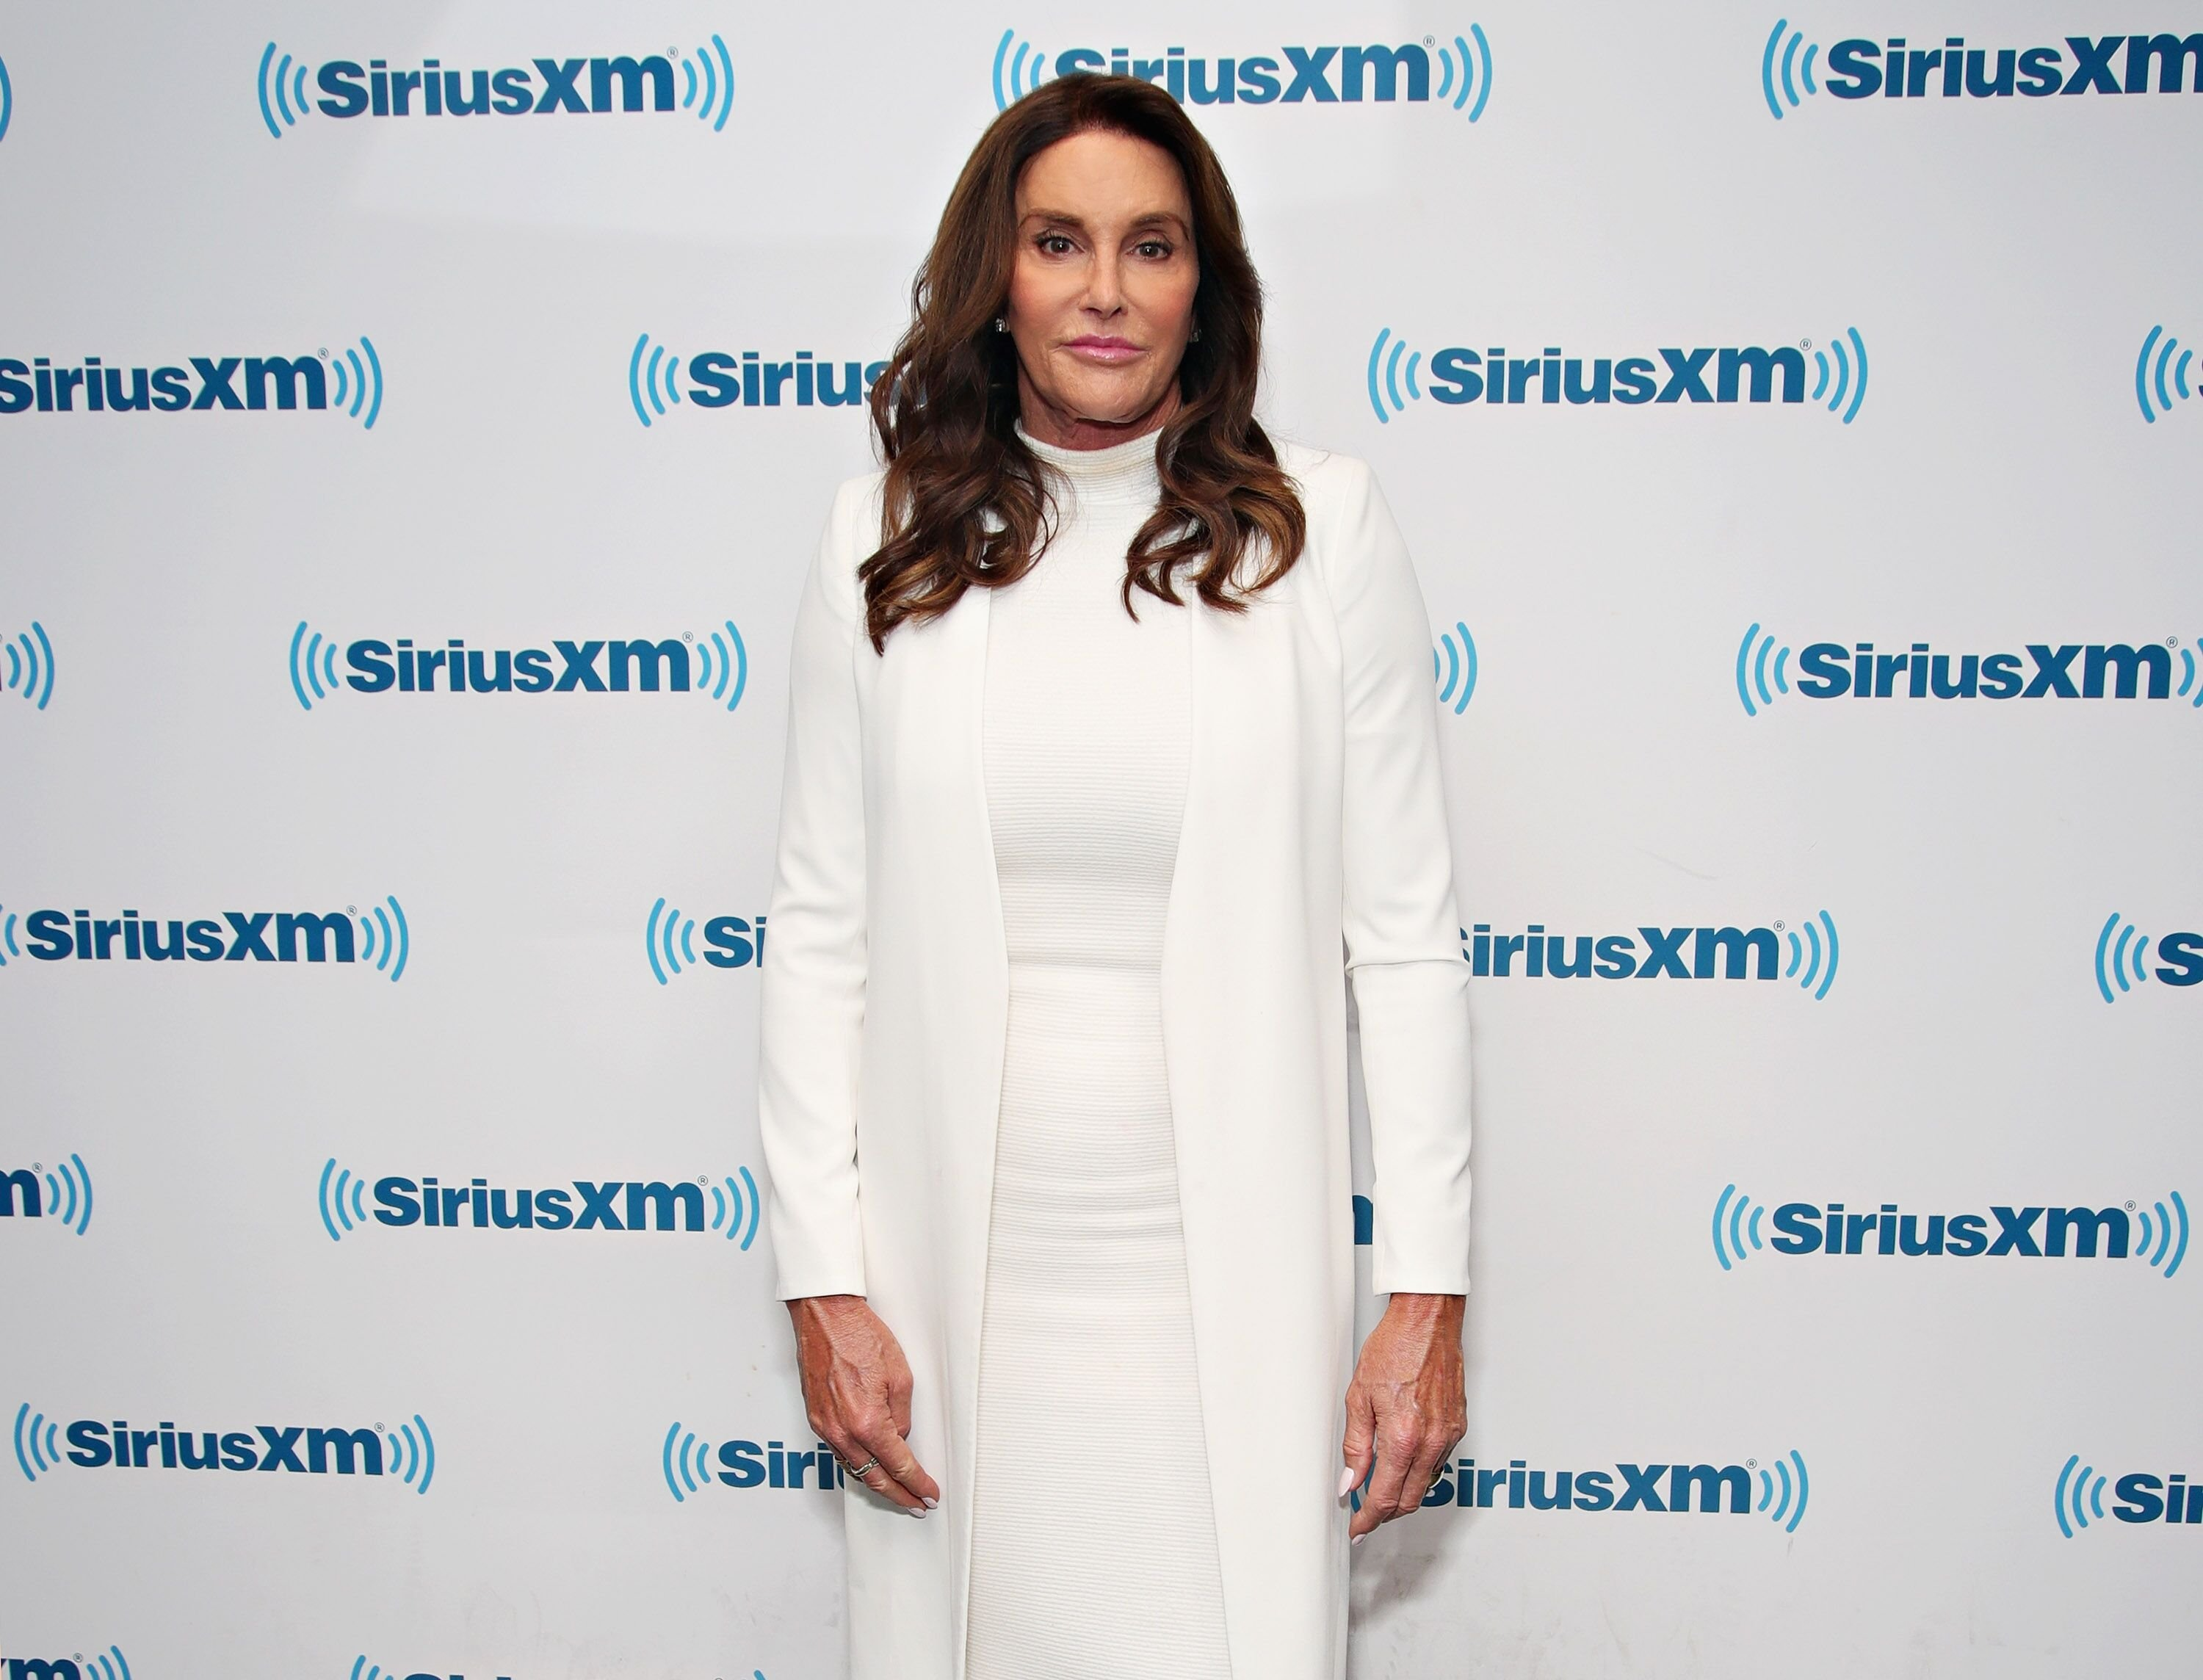 TV personality/ author Caitlyn Jenner visits the SiriusXM Studios in New York City | Photo: Getty Images